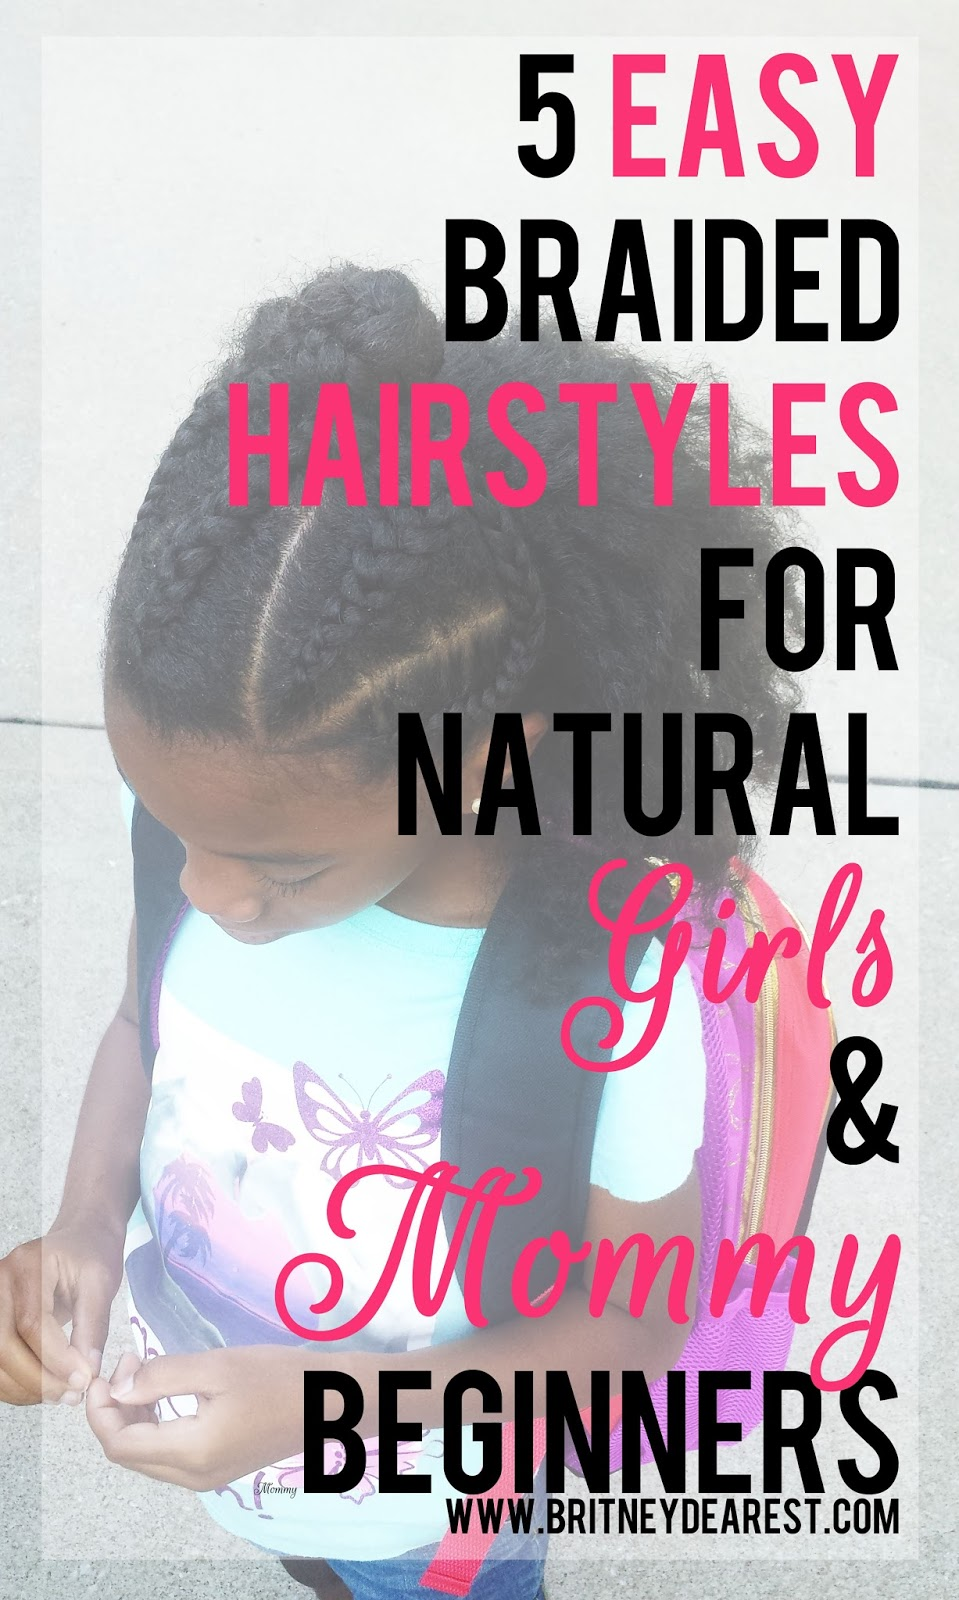 Britney Dearest 5 Easy Braided Hairstyles For Natural Girls